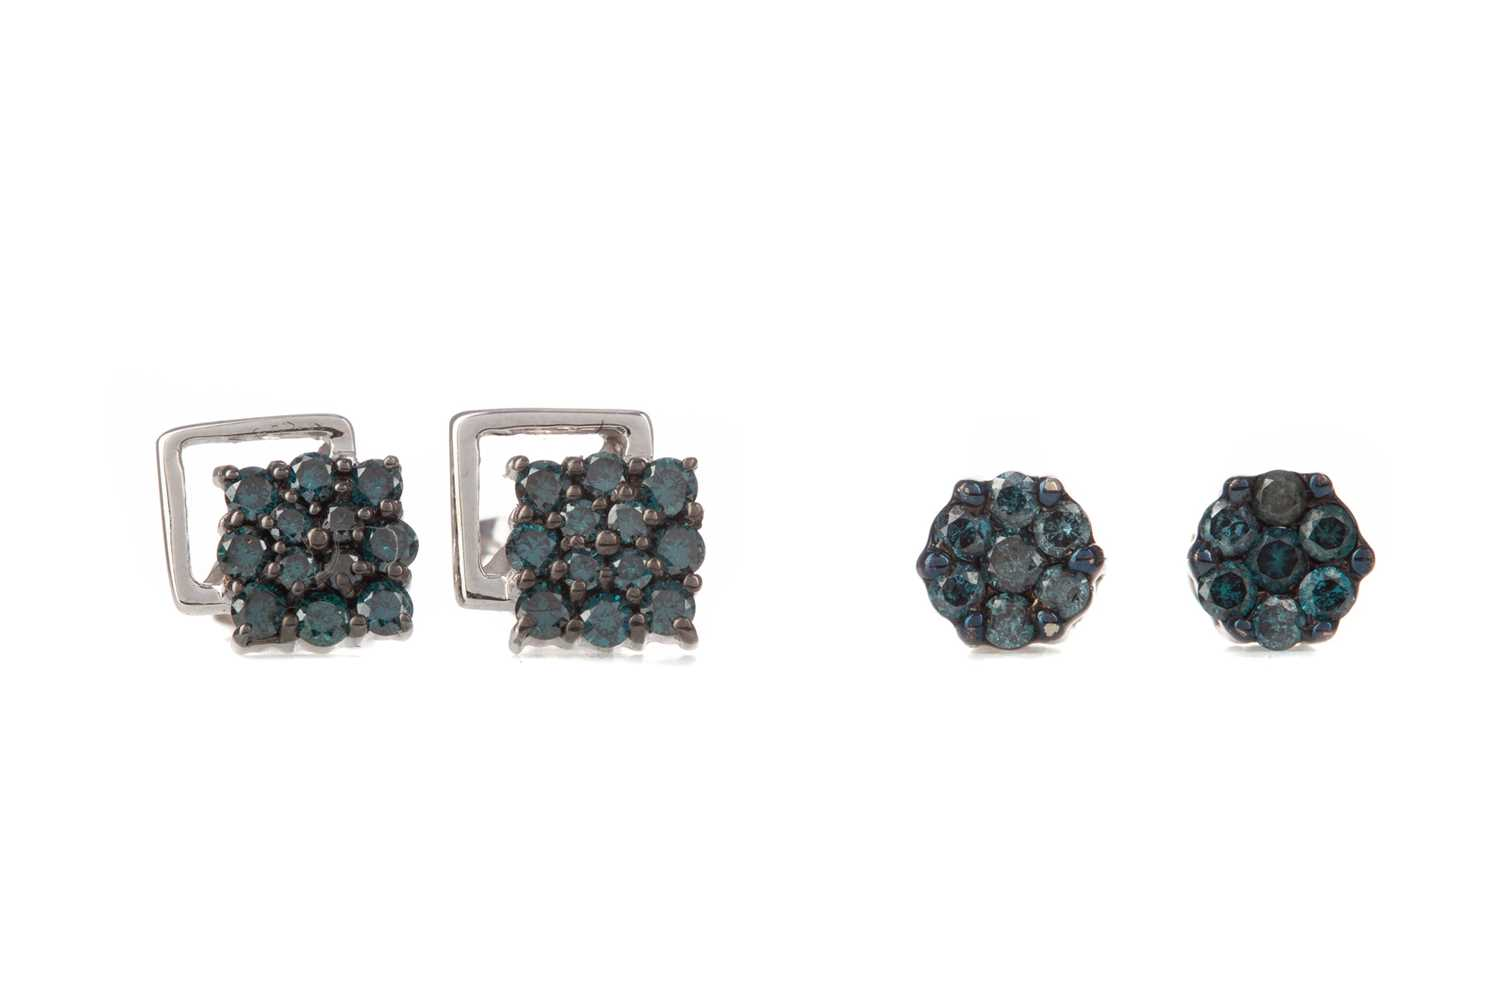 Lot 347 - TWO PAIRS OF TREATED BLUE DIAMOND EARRINGS